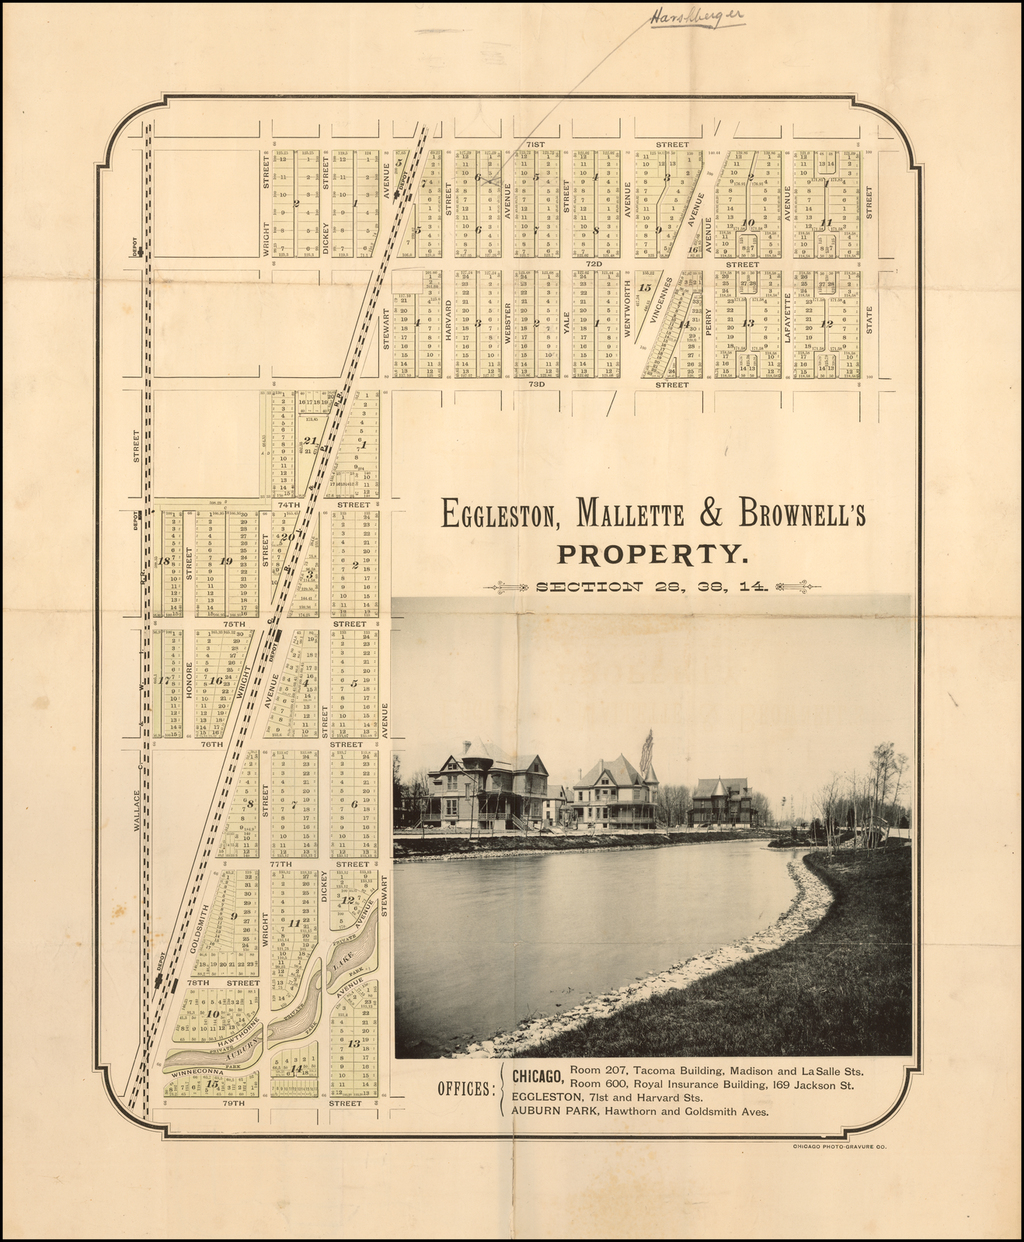 (Auburn Park) Eggleston, Mallette & Brownell's Property By Chicago Photo-Gravure Co.